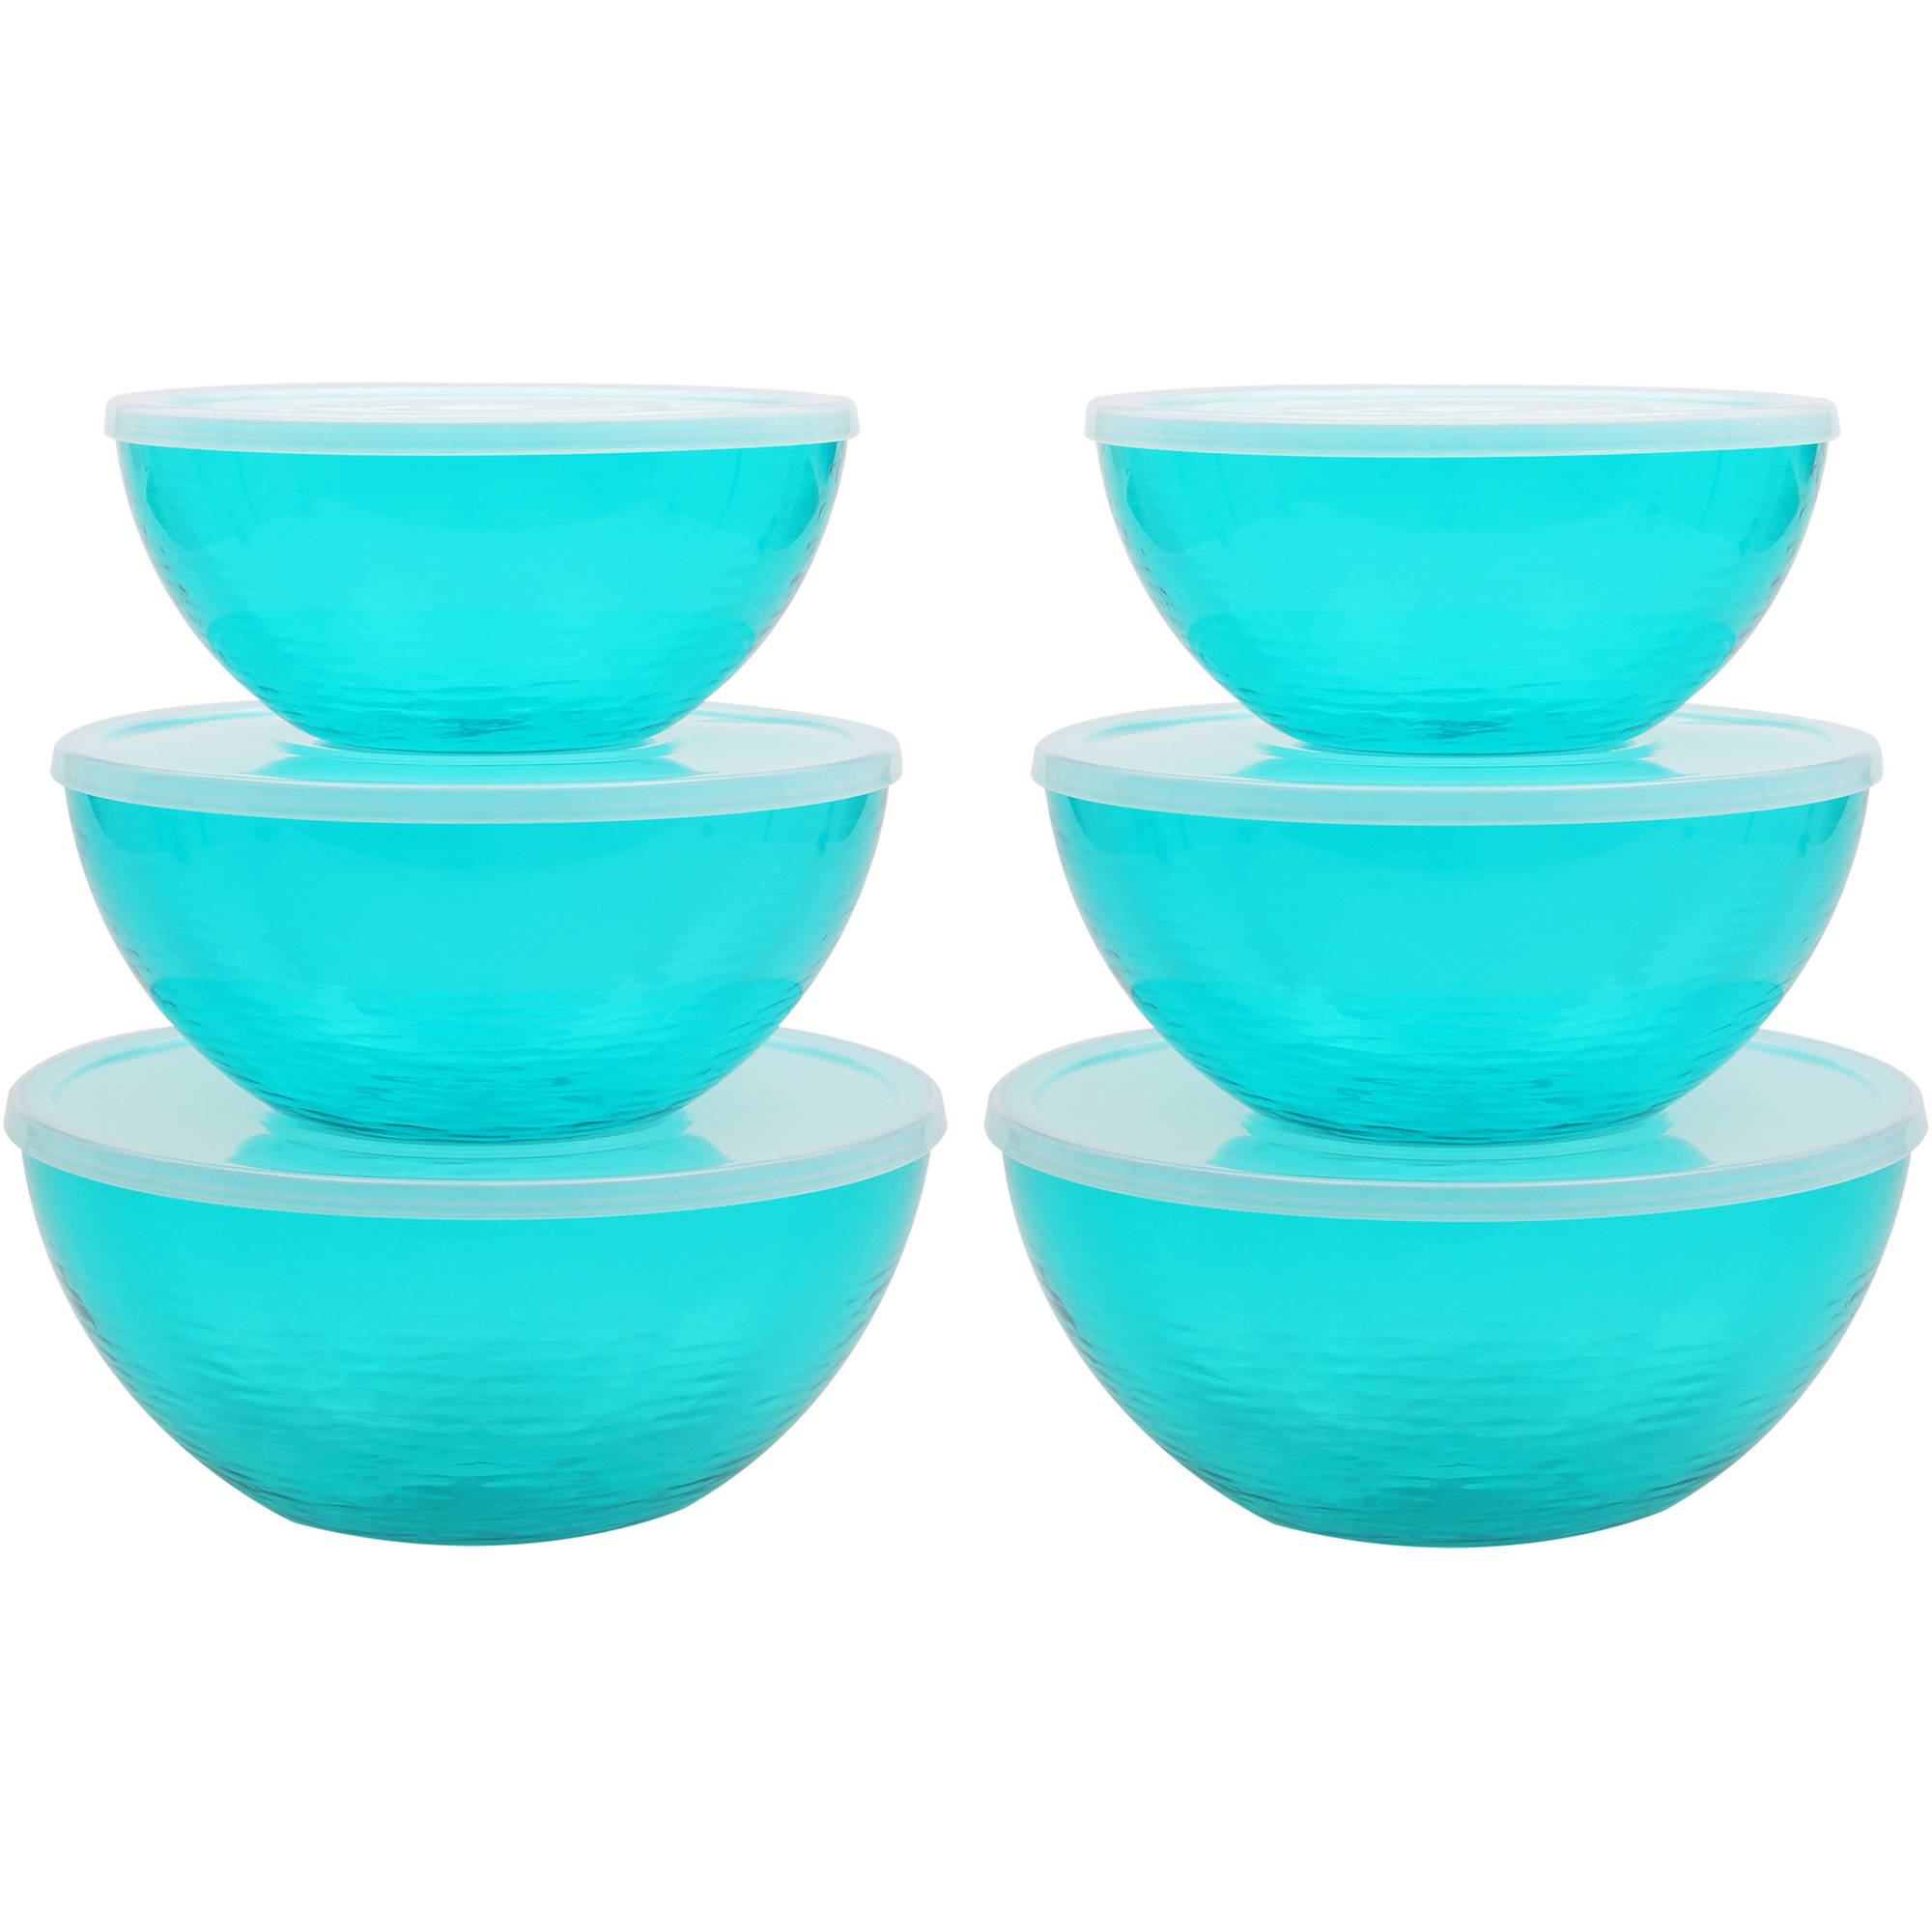 Mainstays Teal Lidded Bowl, 2pk 6-Piece Sets